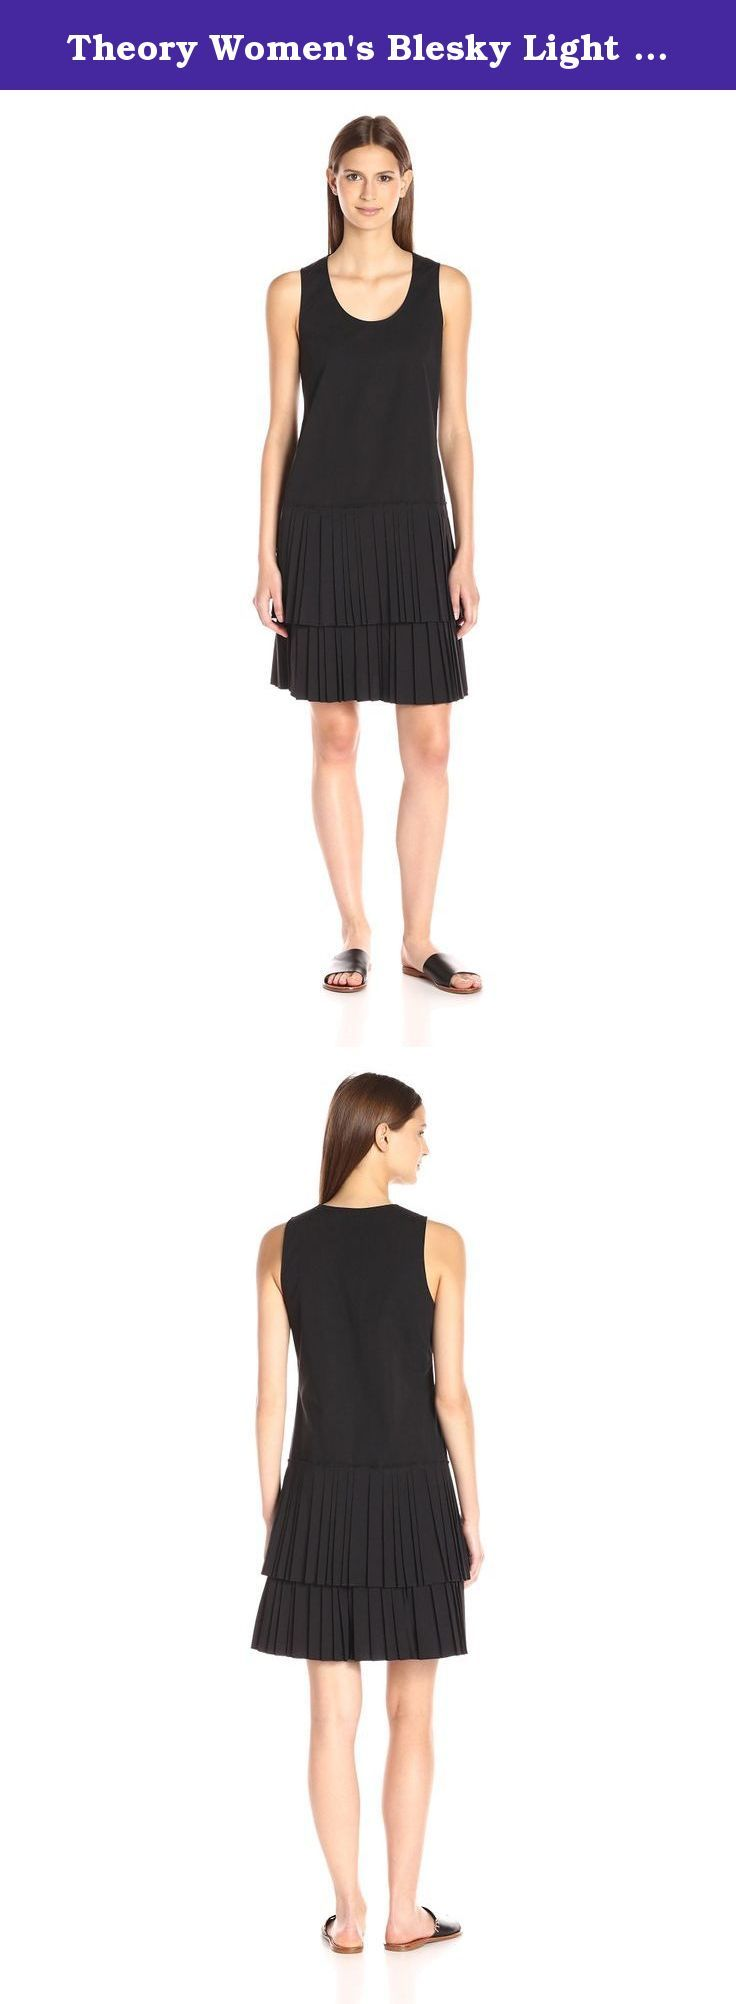 Theory Women's Blesky Light Poplin Dress, Black, 4. Cotton poplin tank dress with a double layer of pleating detail at the bottom.